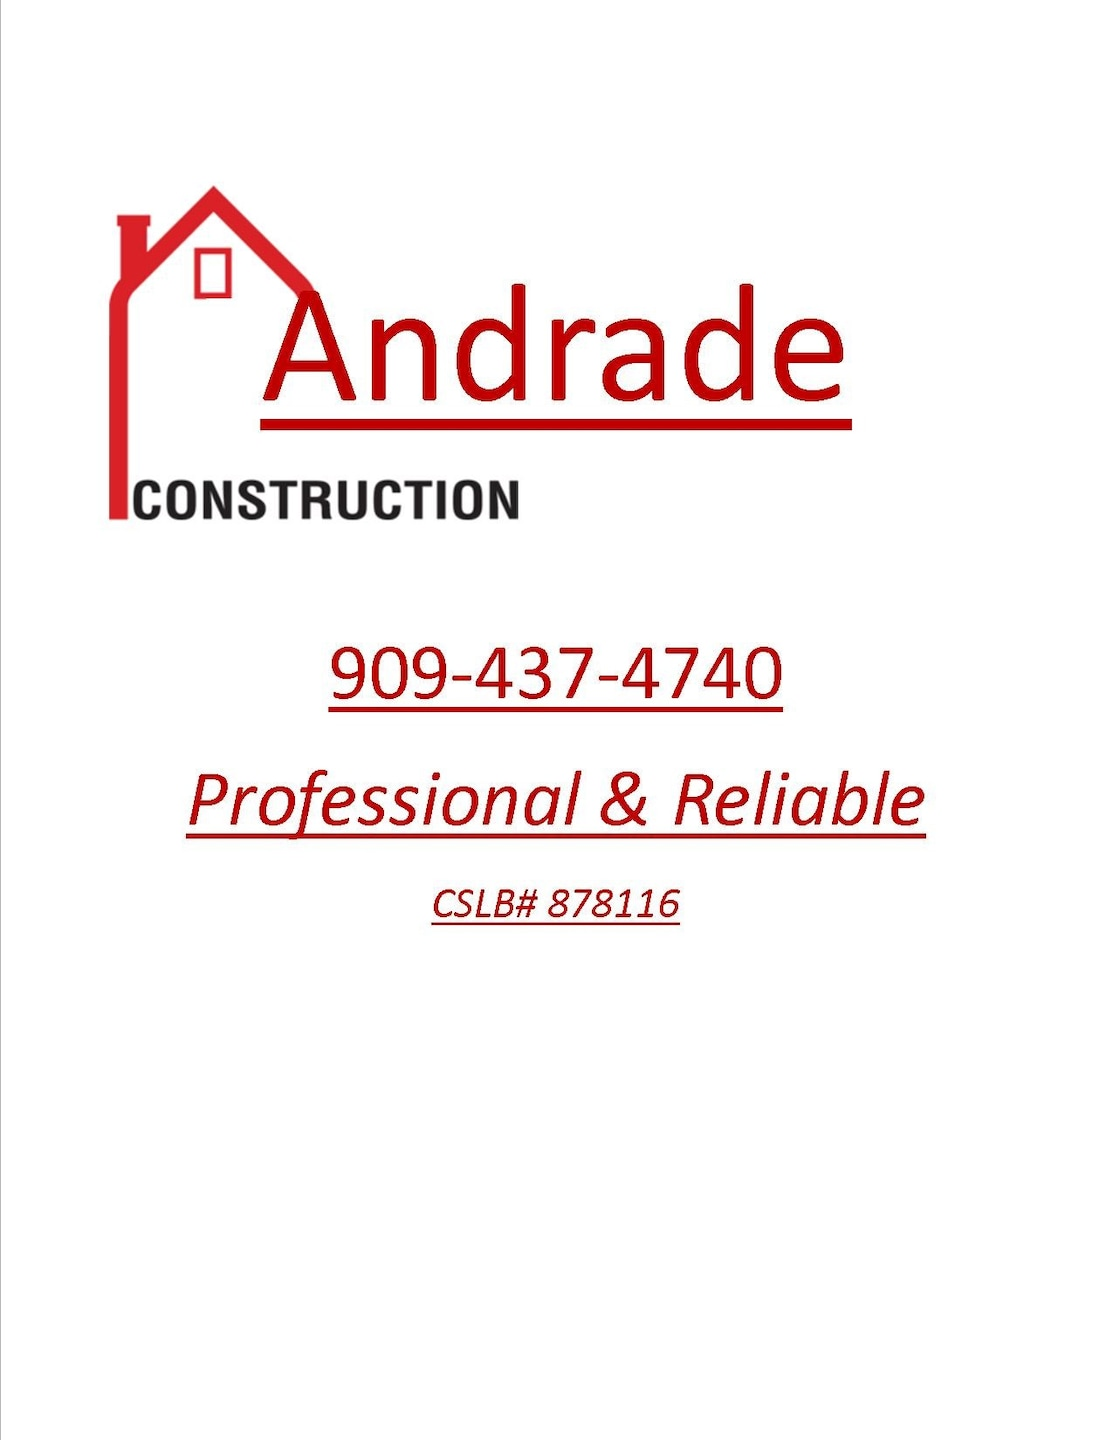 Andrade Construction